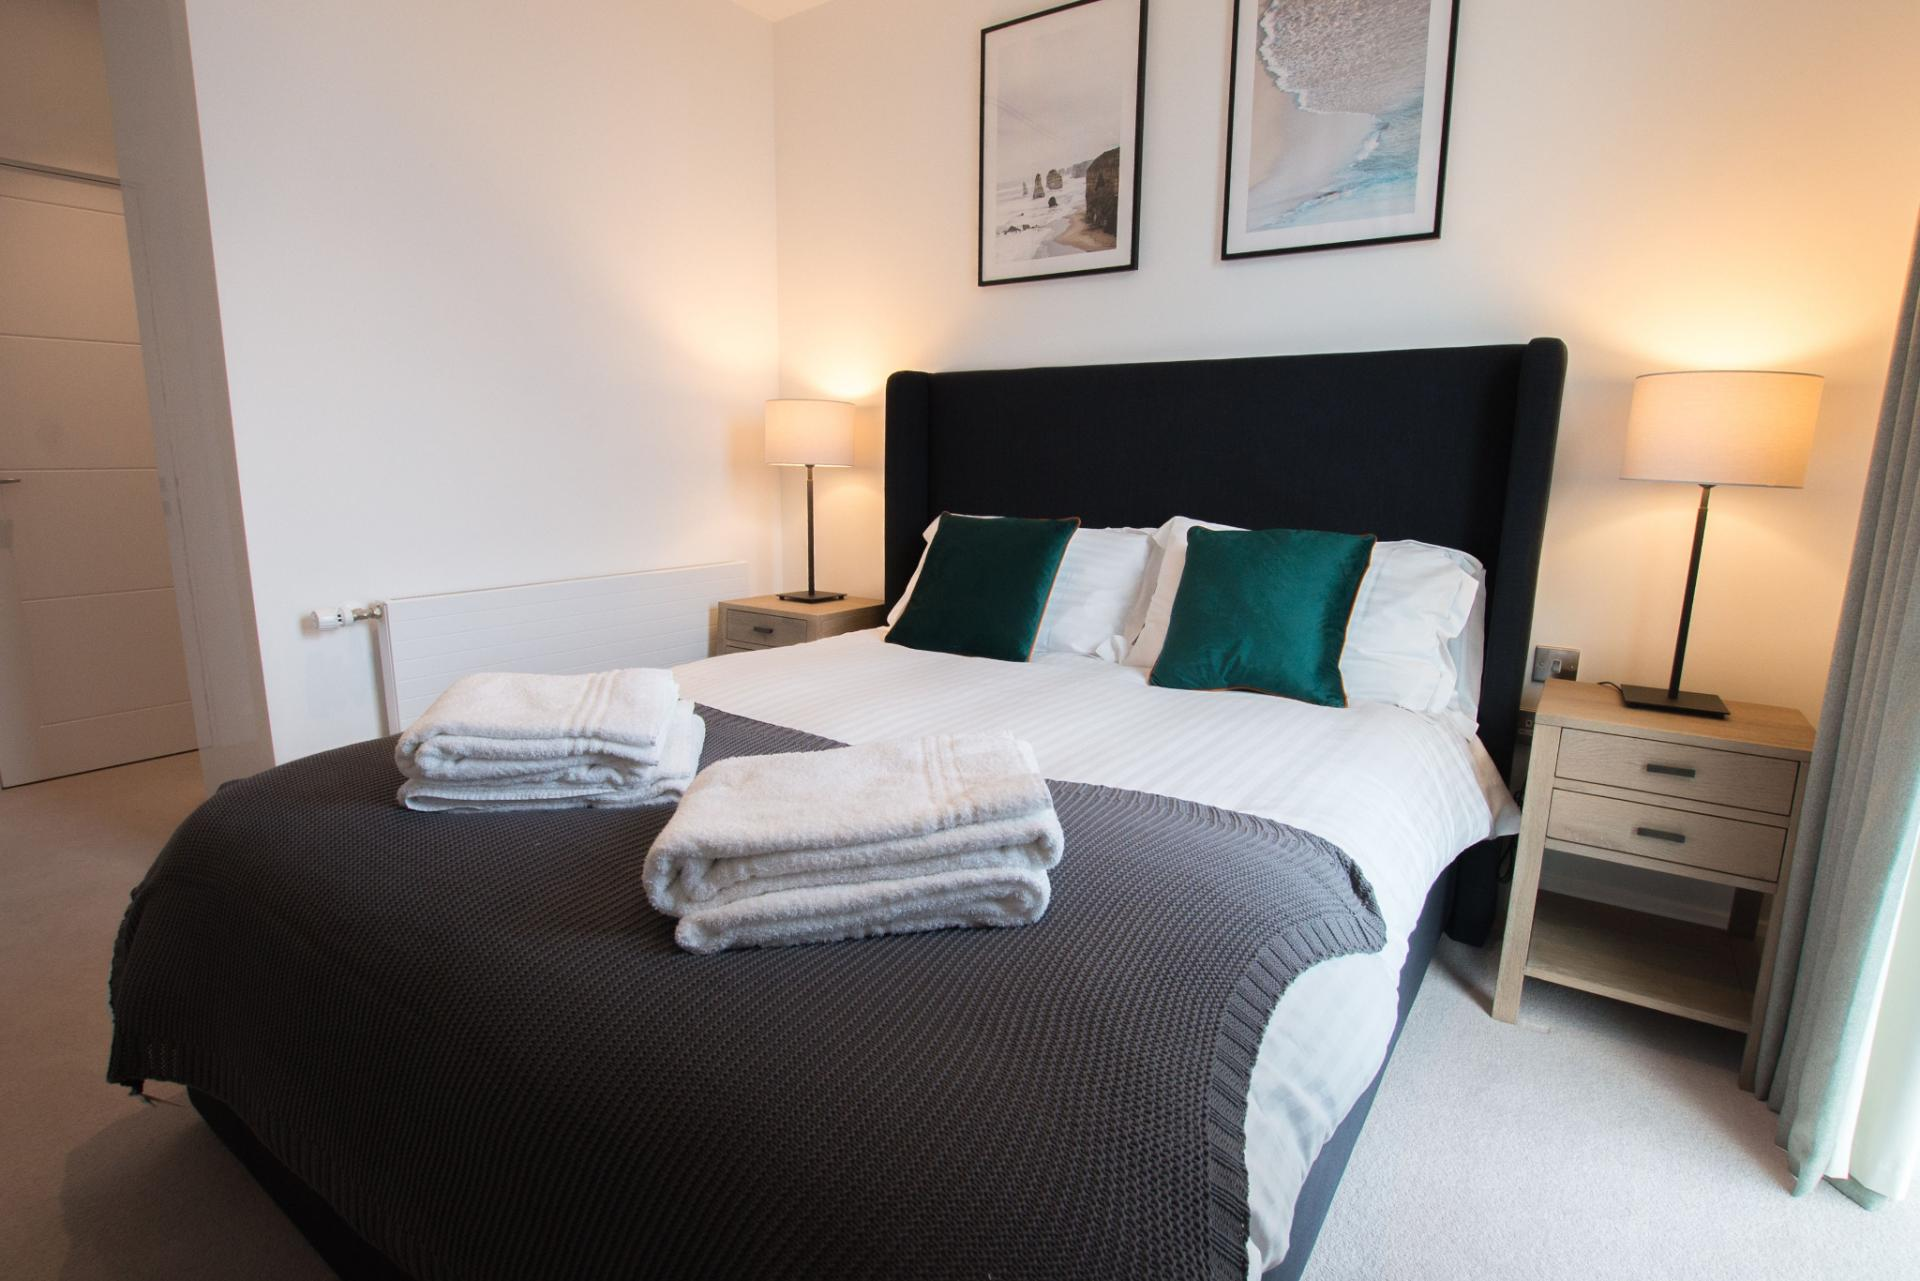 Bed at Canary Wharf Apartments By Charles Hope, Canary Wharf, London - Citybase Apartments